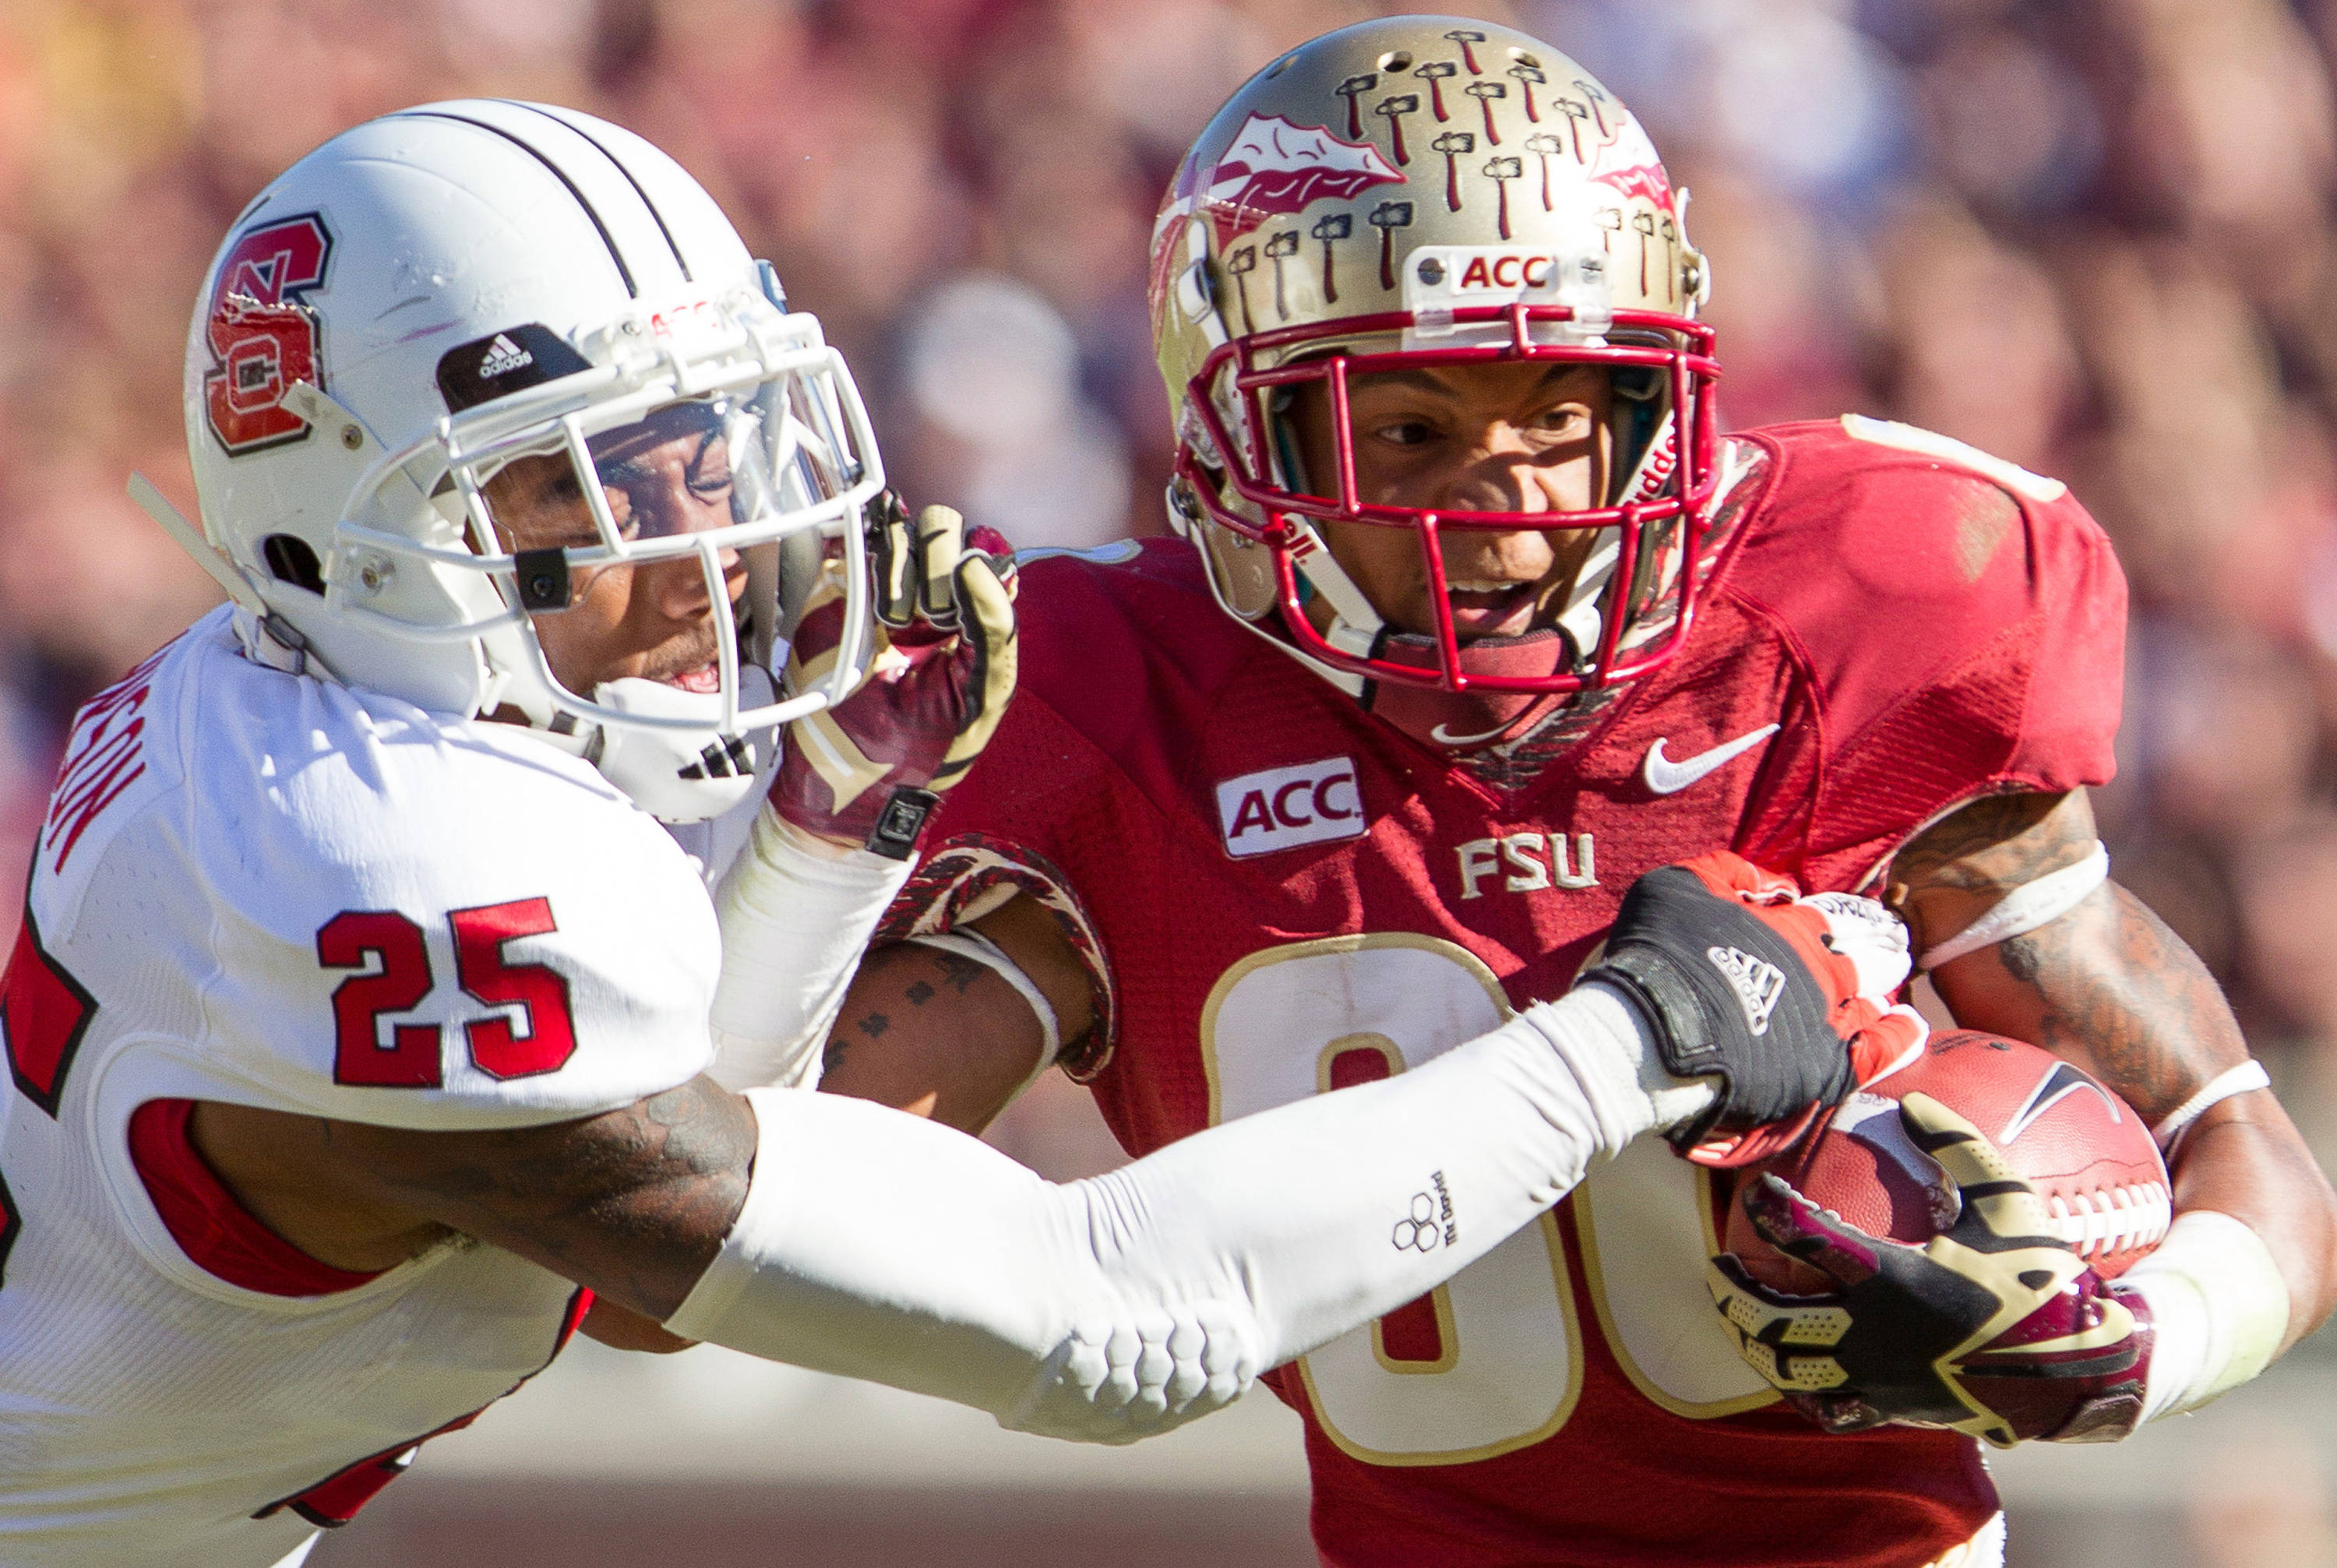 Rashad Greene (80) runs the ball during FSU Football's 49-17 win over NC State on Saturday, October 26, 2013 in Tallahassee, Fla. Photo by Michael Schwarz.